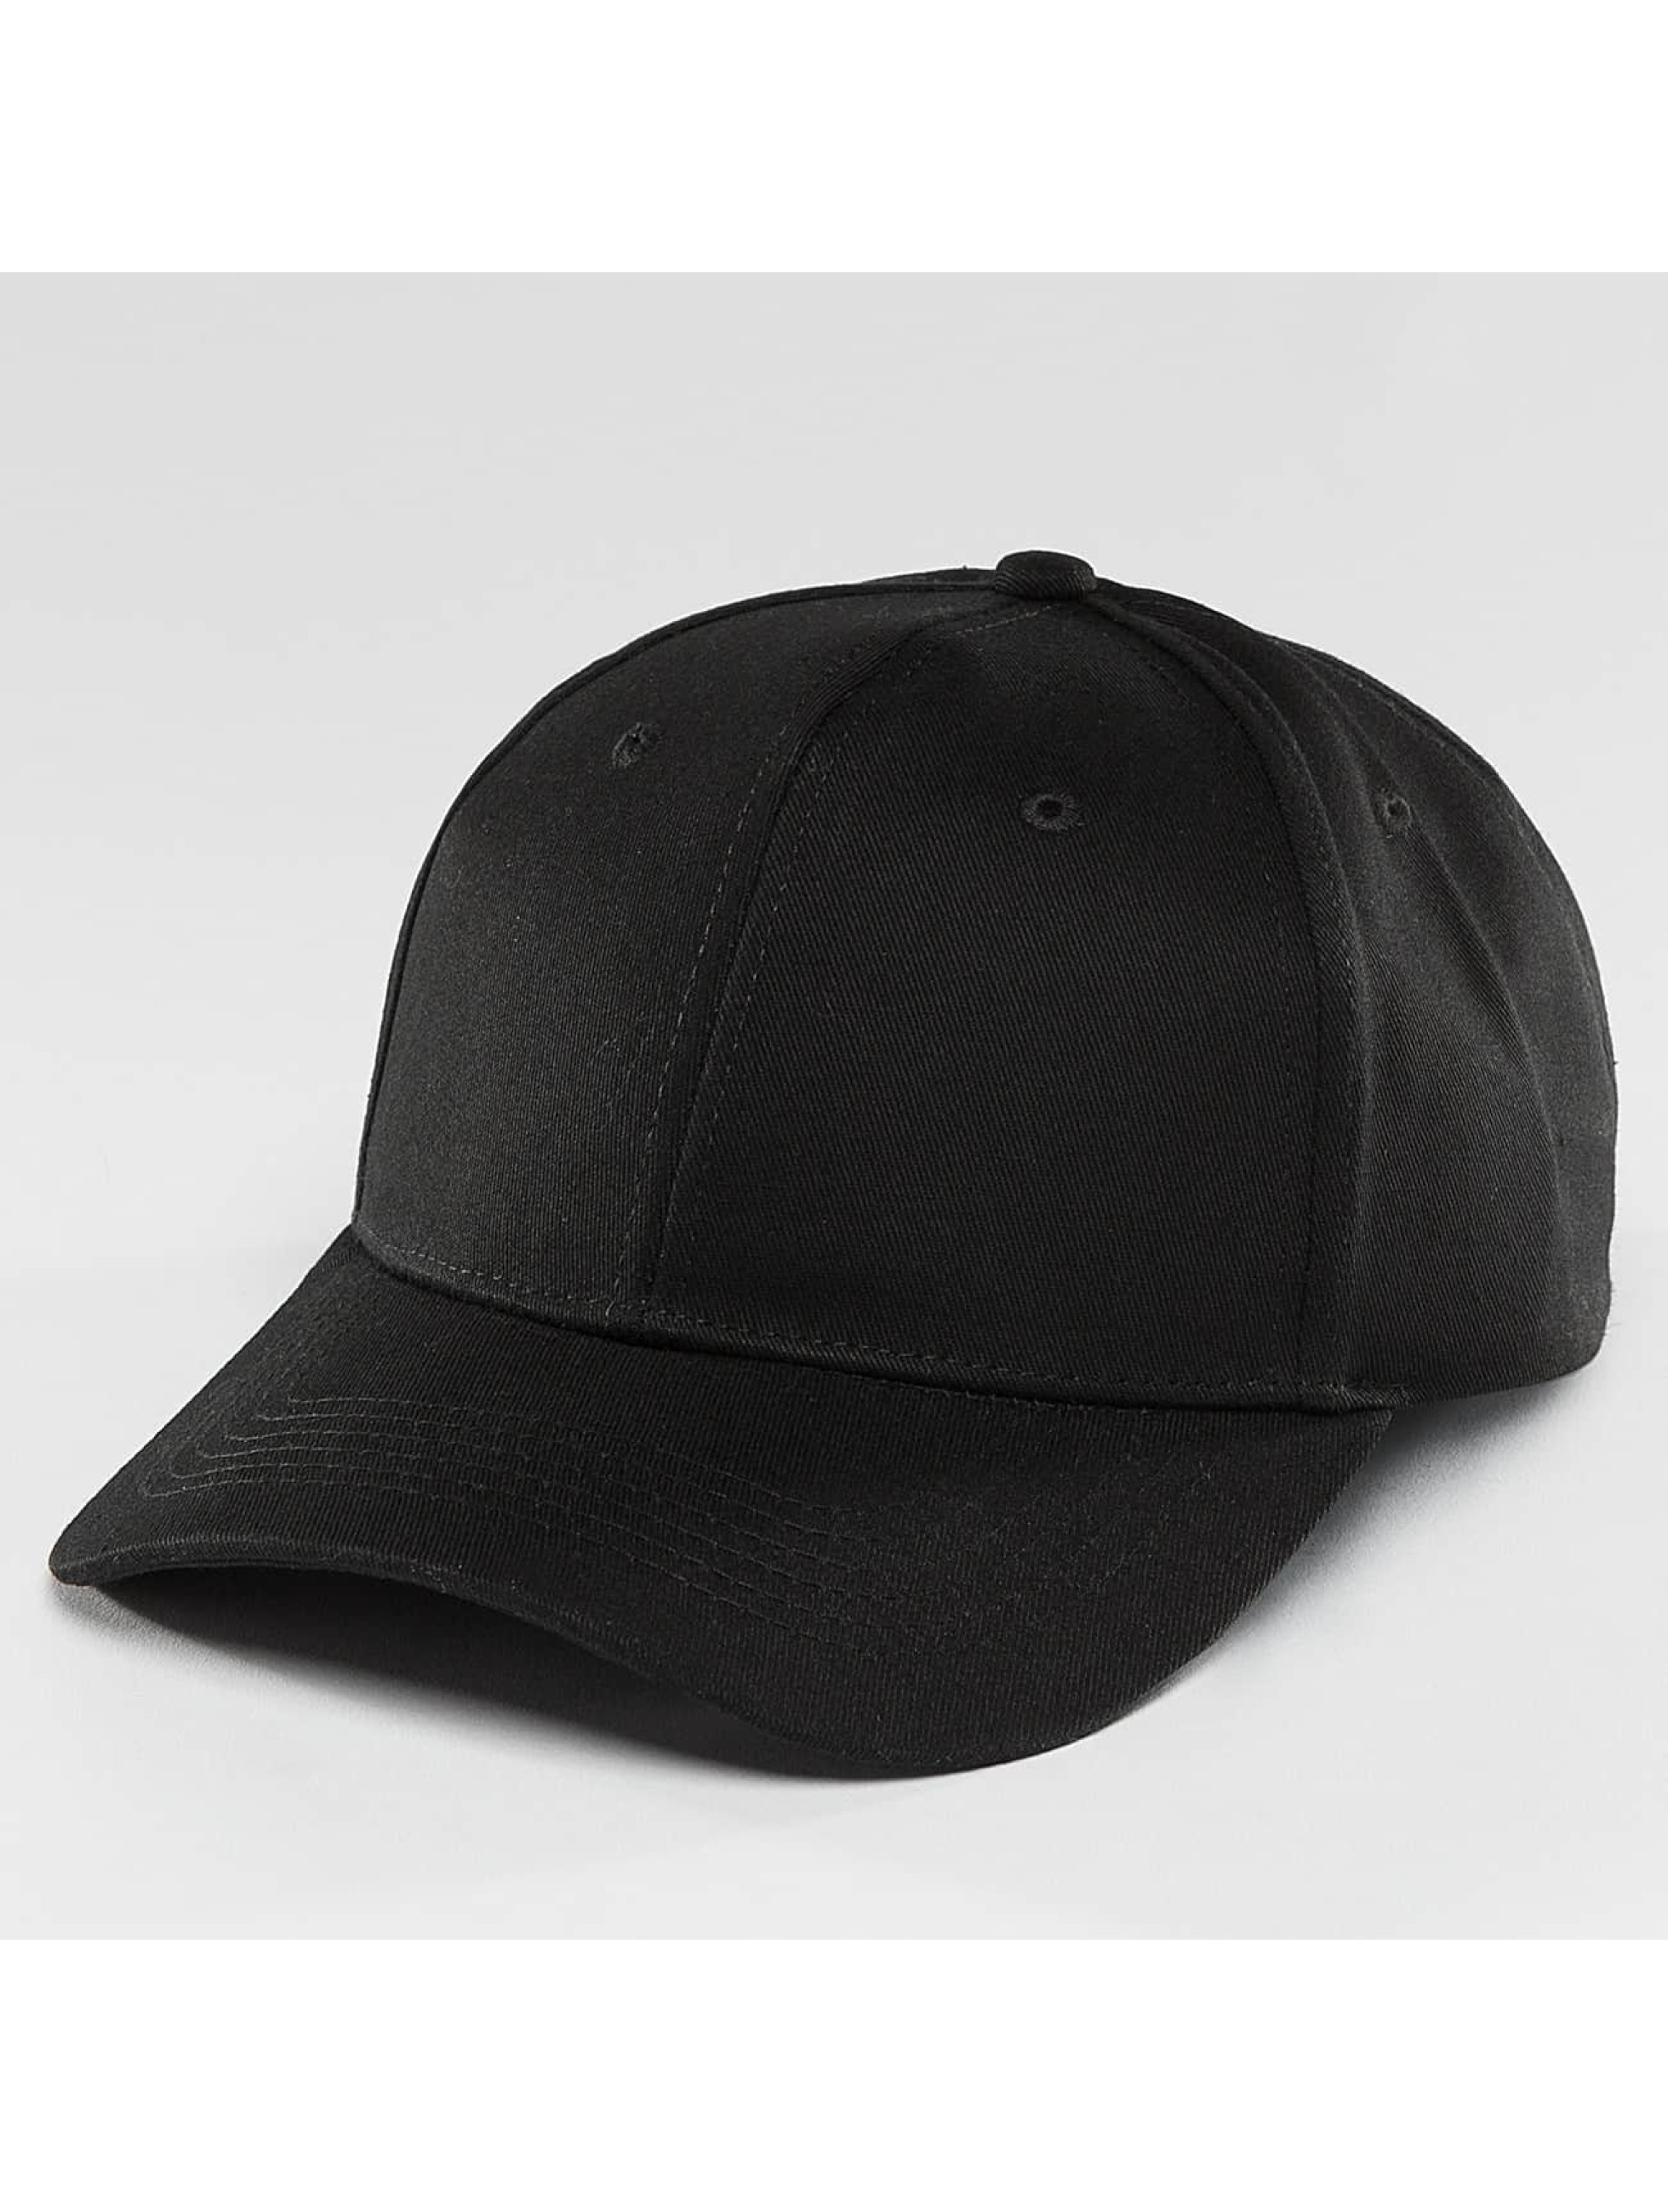 TrueSpin Snapback Caps Unstructured Dad sort